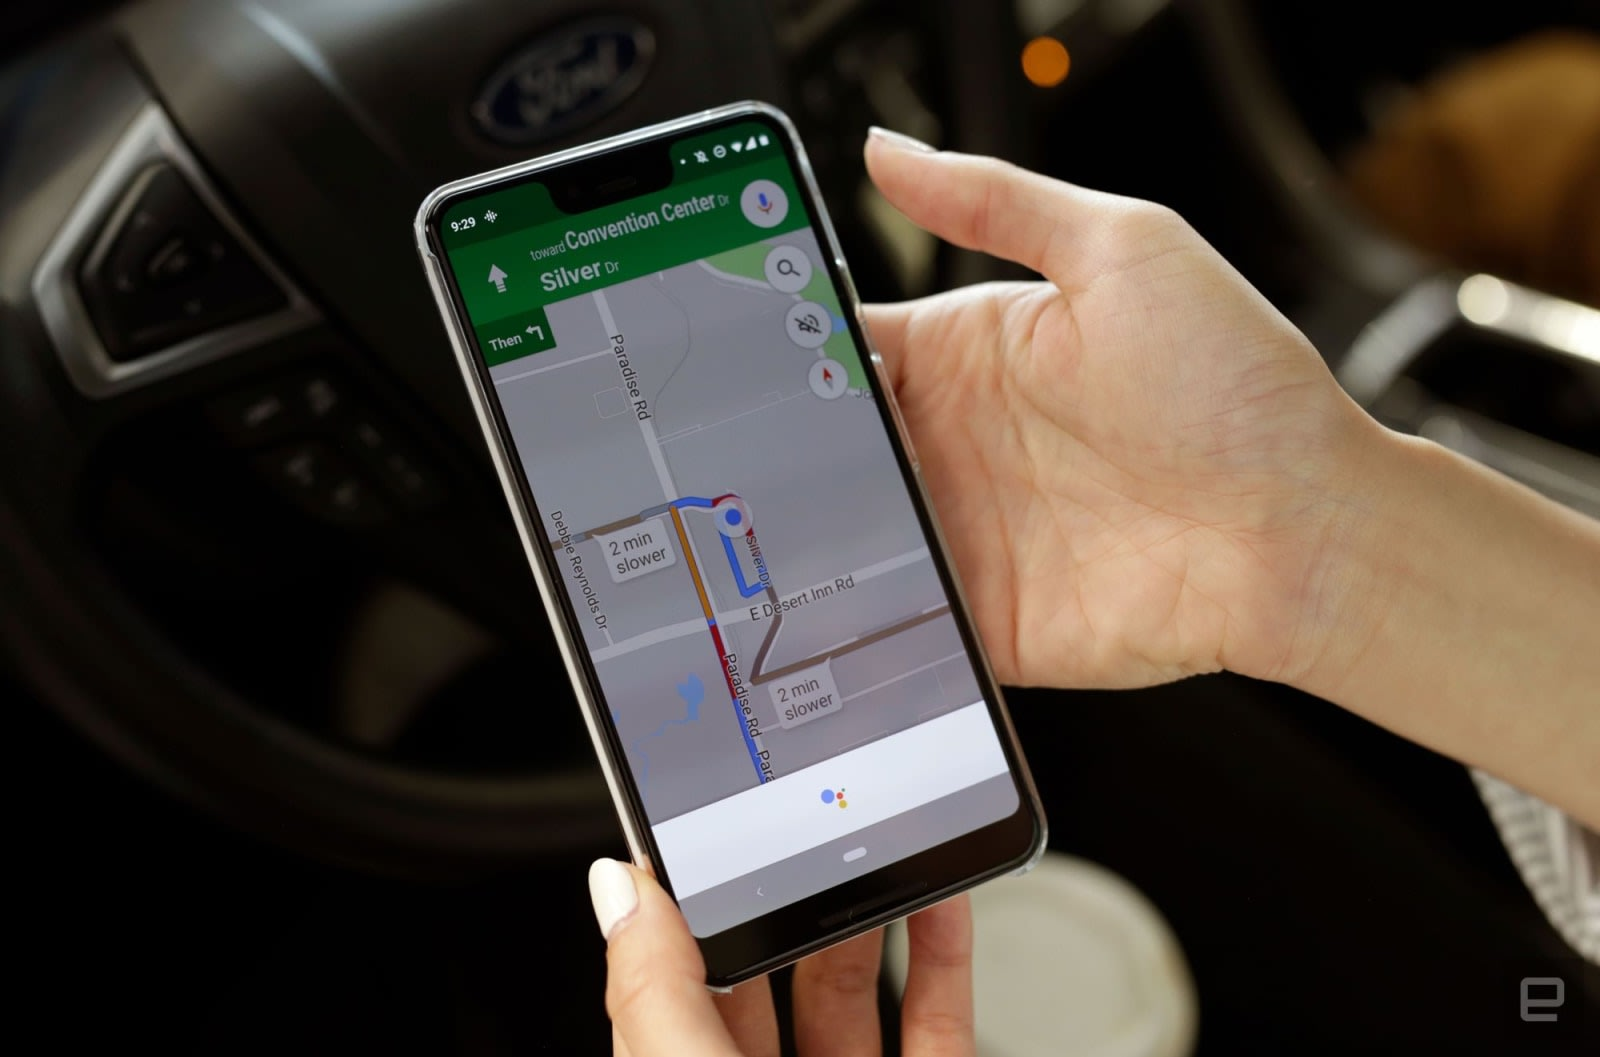 Google Maps shows your speed while you're driving